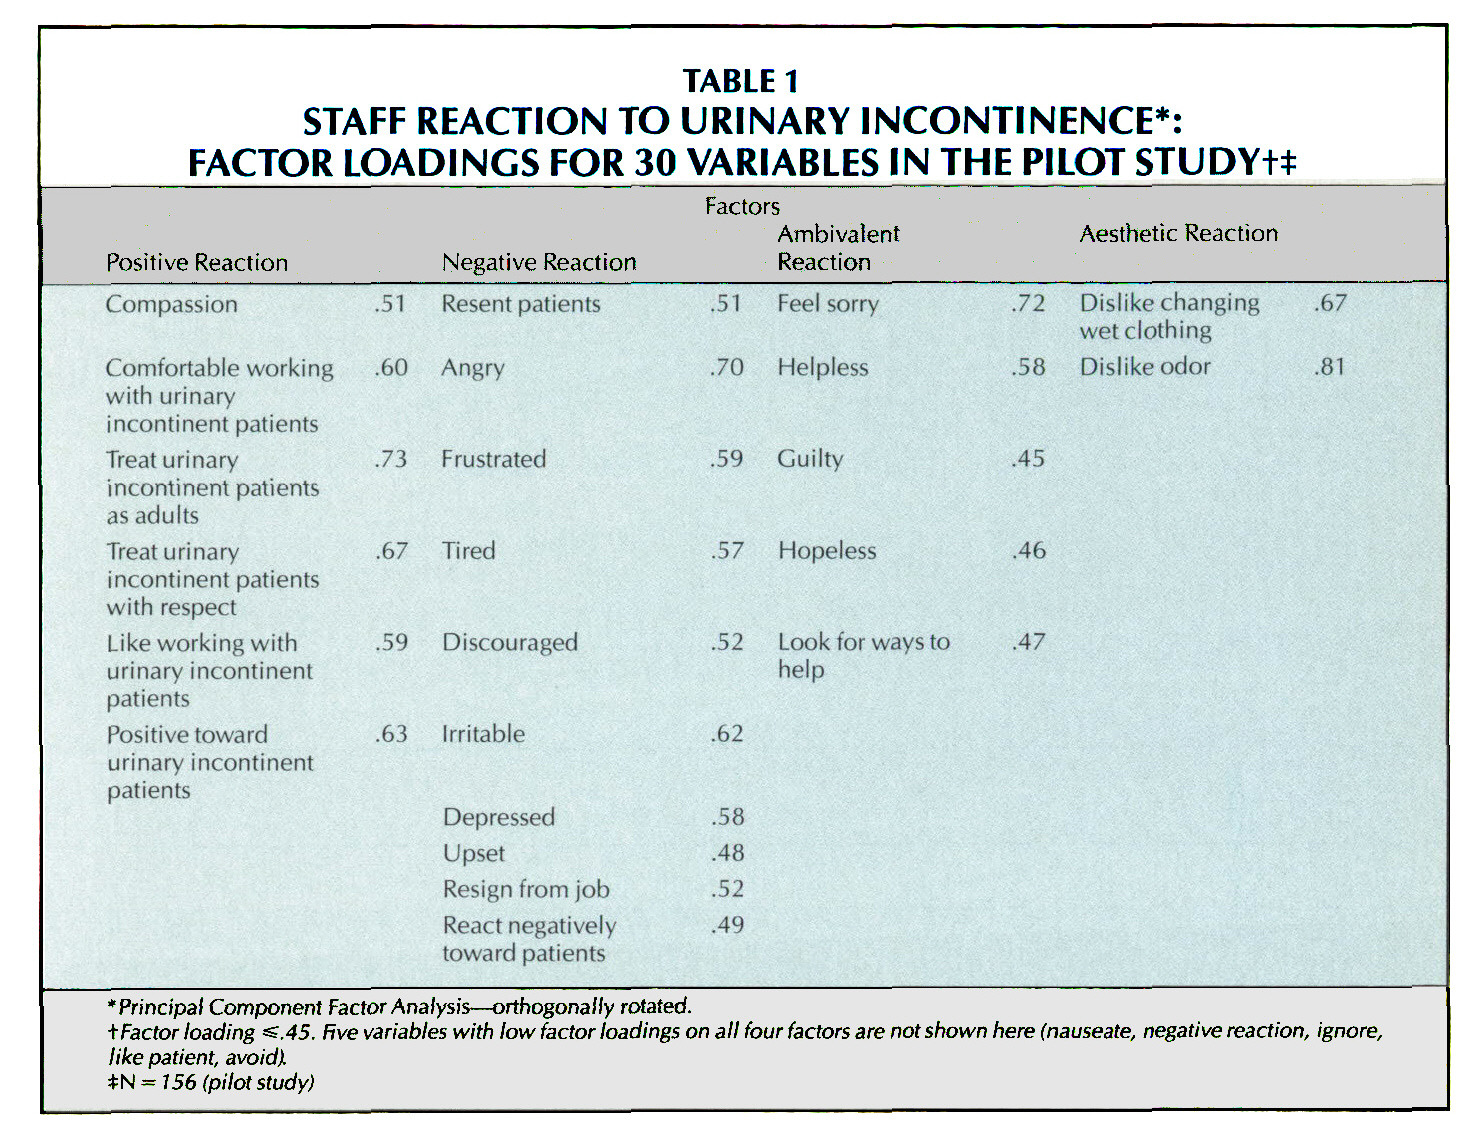 TABLE 1STAFF REACTION TO URINARY INCONTINENCE*: FACTOR LOADINGS FOR 30 VARIABLES IN THE PILOT STUDY+F